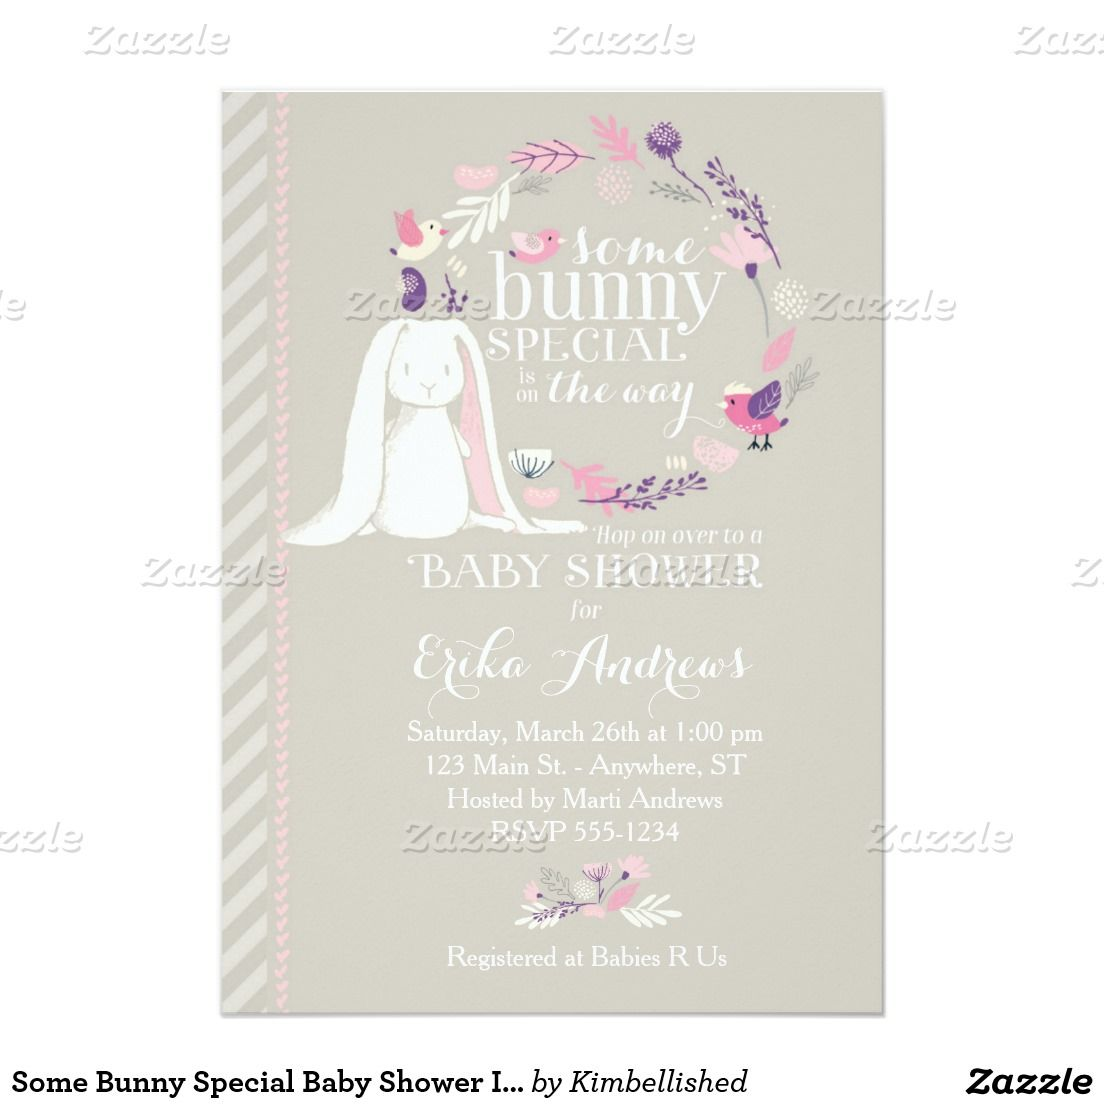 Some bunny special spring baby shower invitation graypinkpurple some bunny special spring baby shower invitation graypinkpurple by kimbellished filmwisefo Image collections